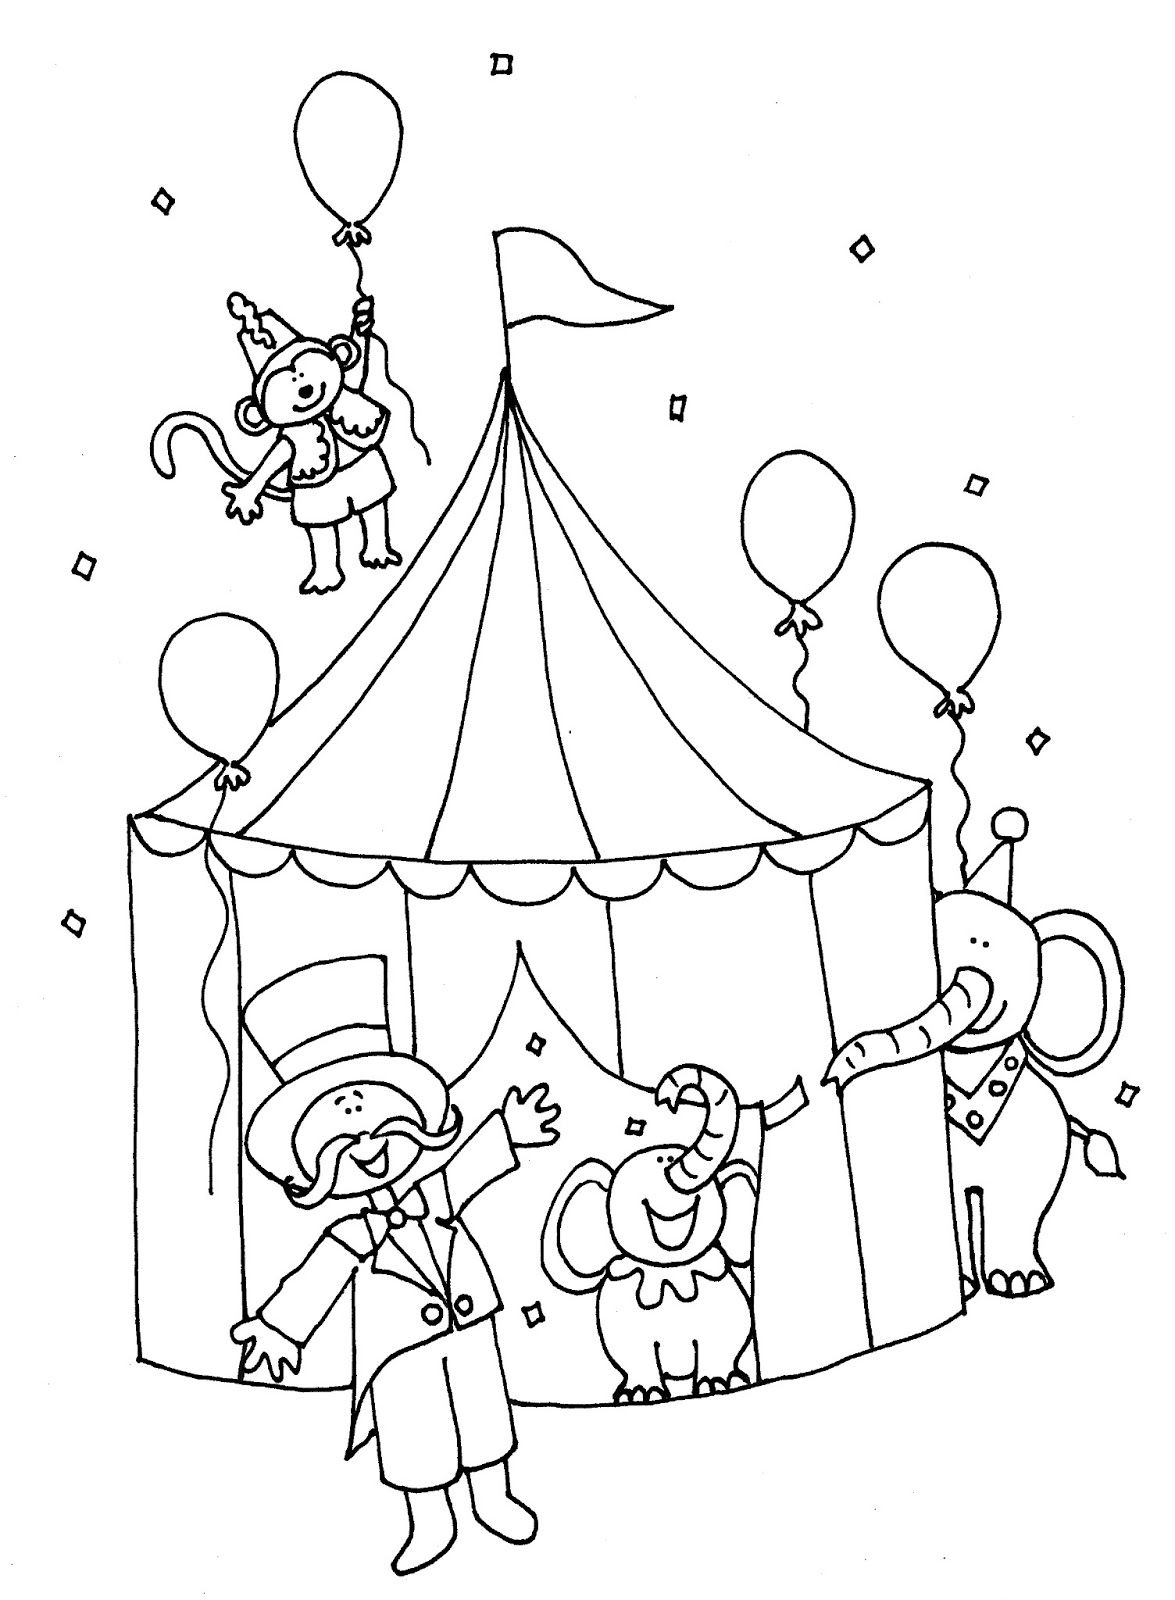 Circus Big Top Png 1 175x1 600 Pixel Circus Theme Crafts Circus